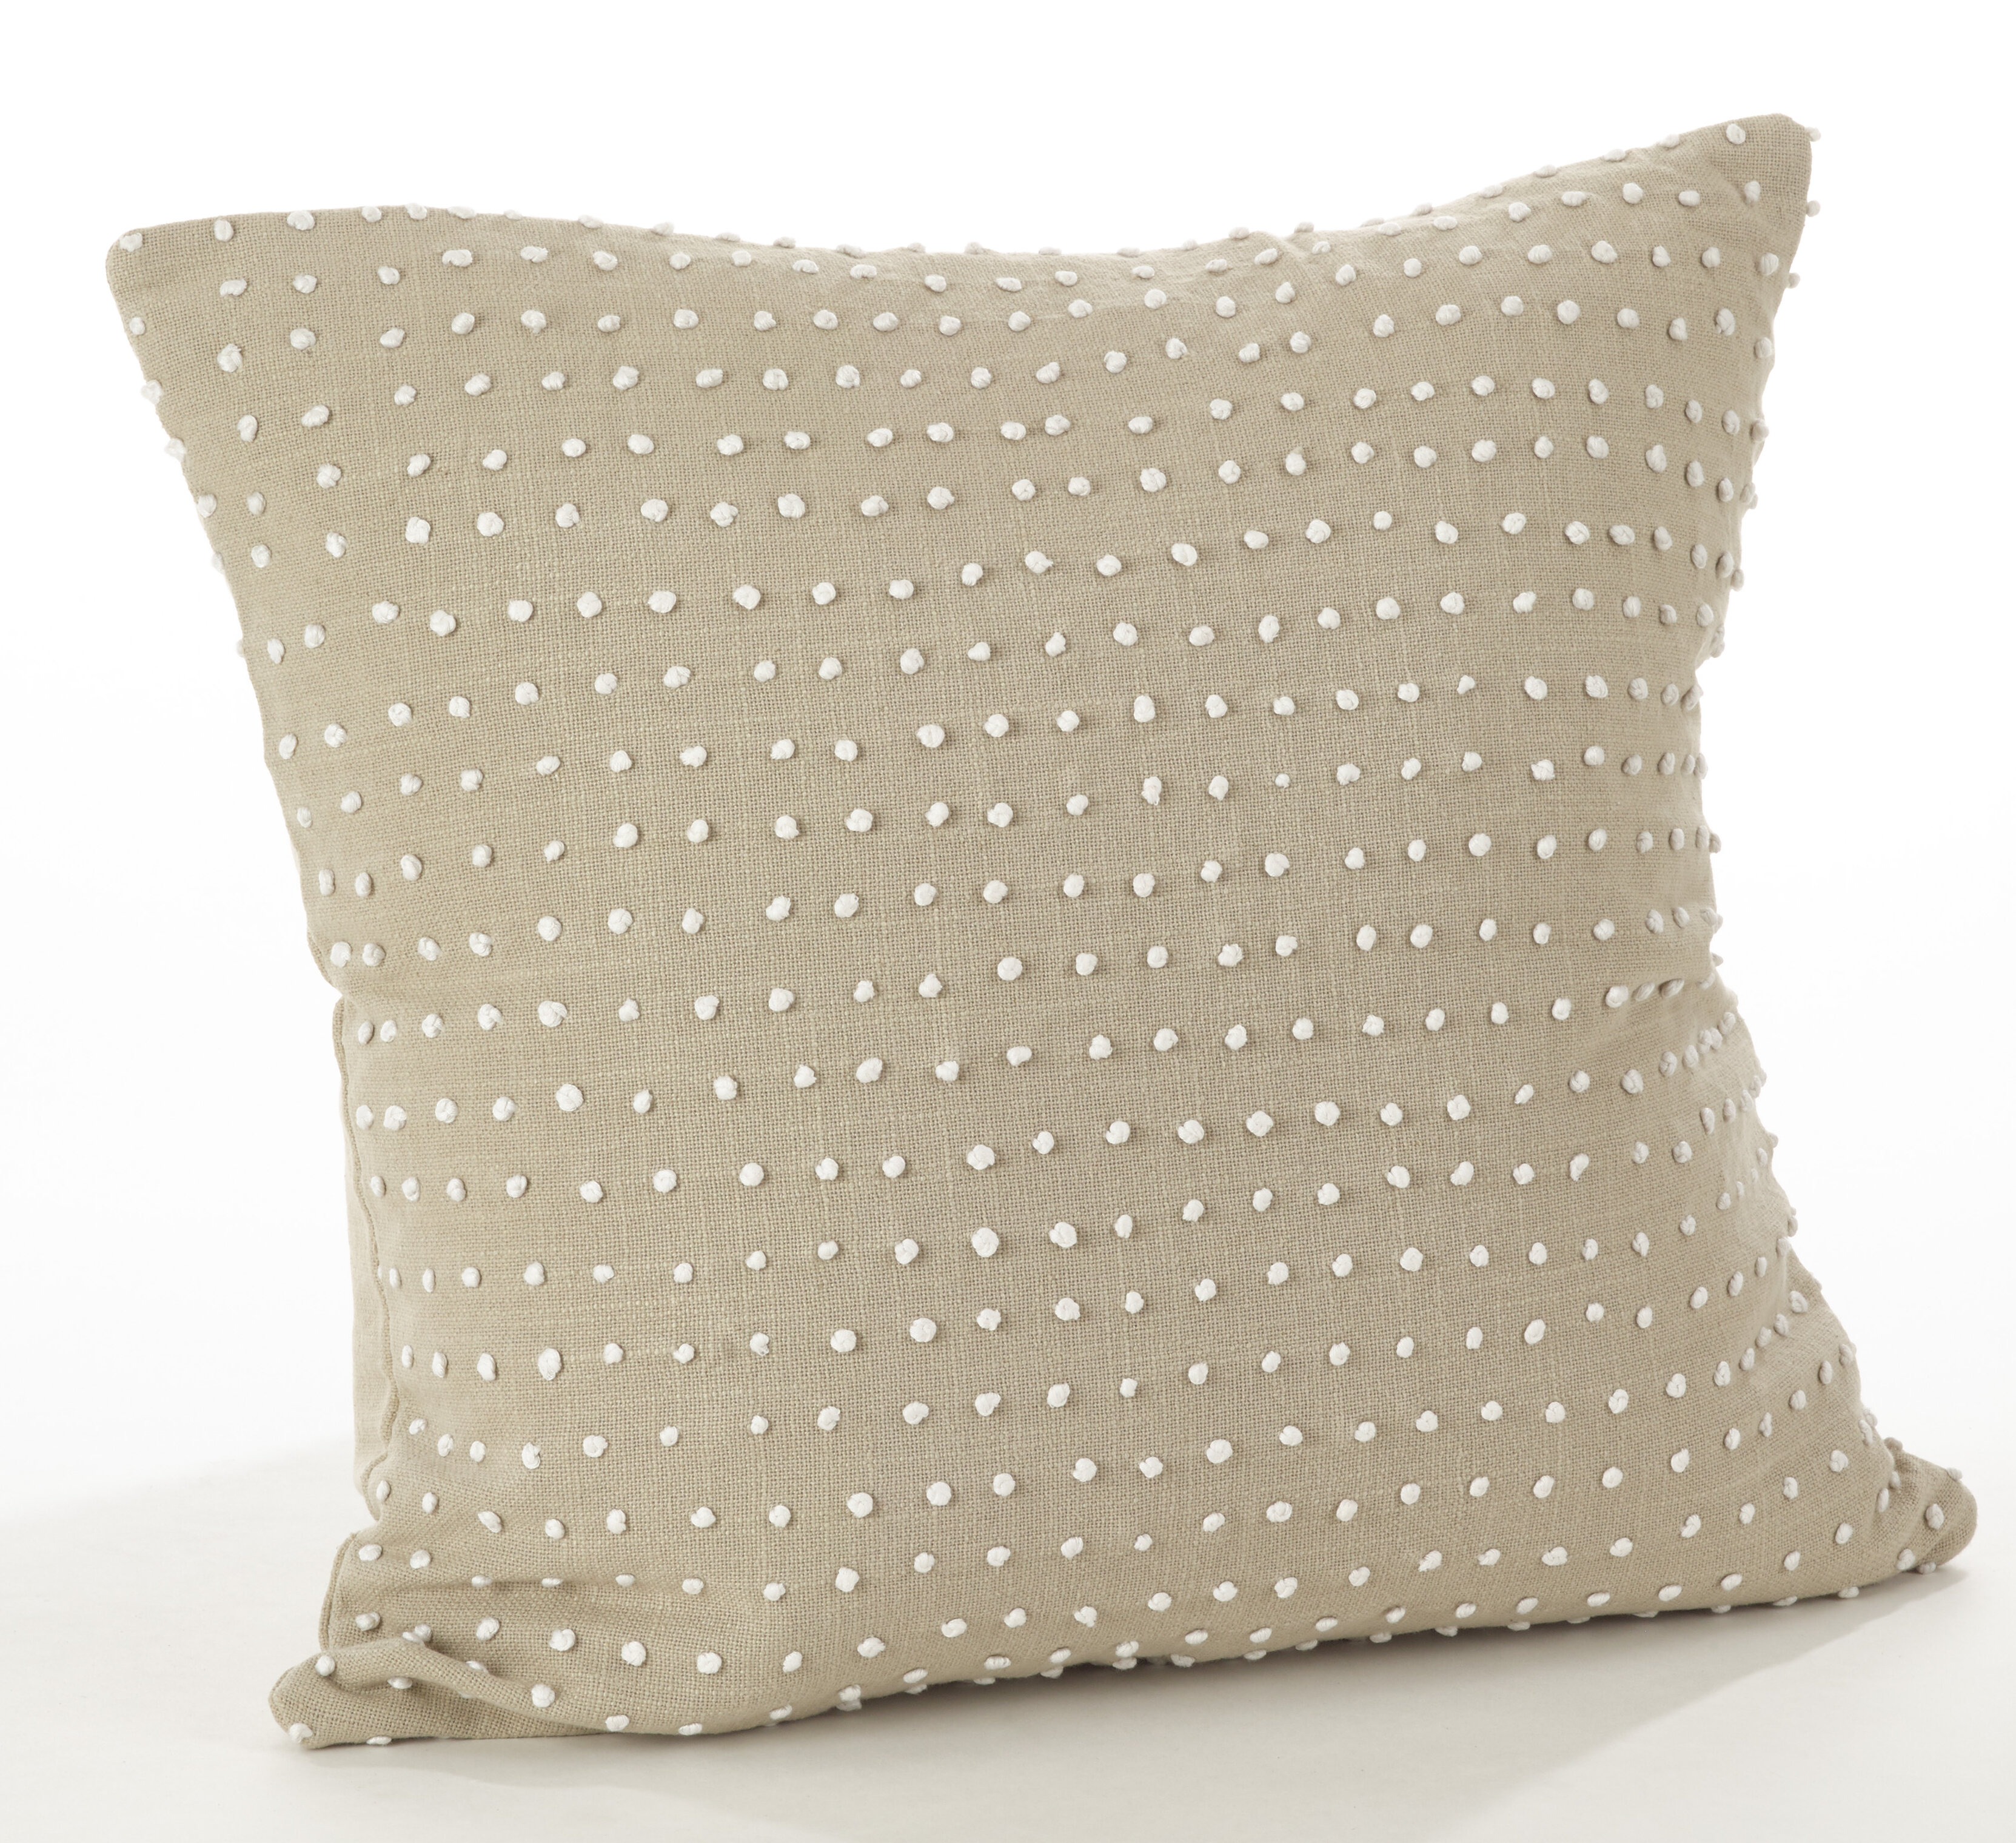 Gracie Oaks Halverson French Knot Cotton Throw Pillow Wayfair